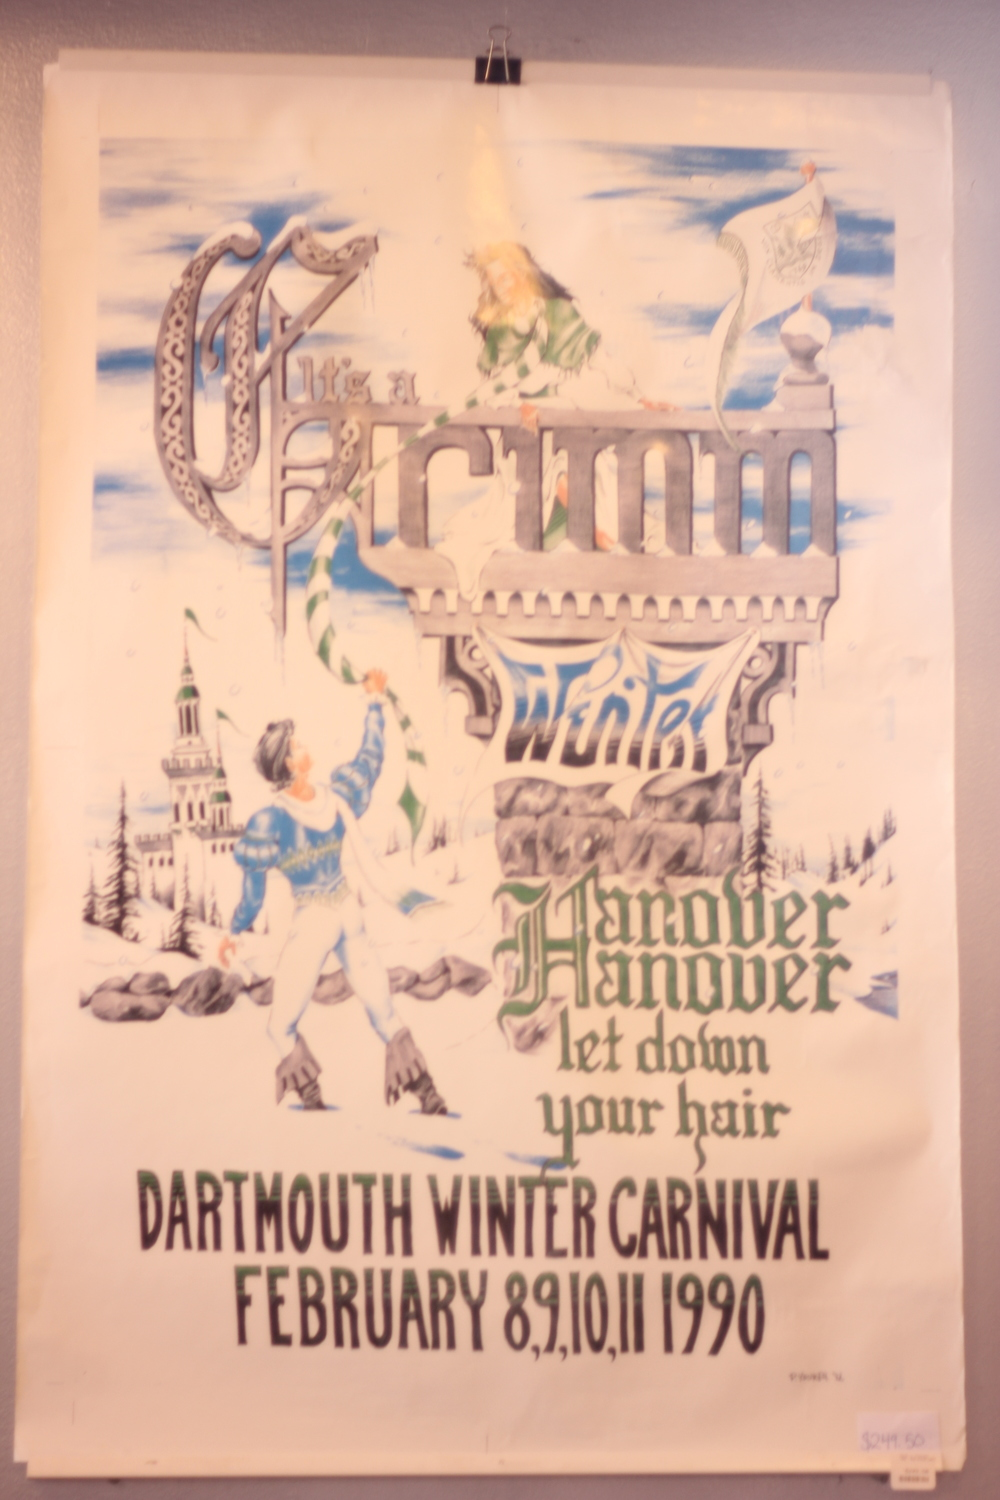 Dartmouth Winter Carnival 1990